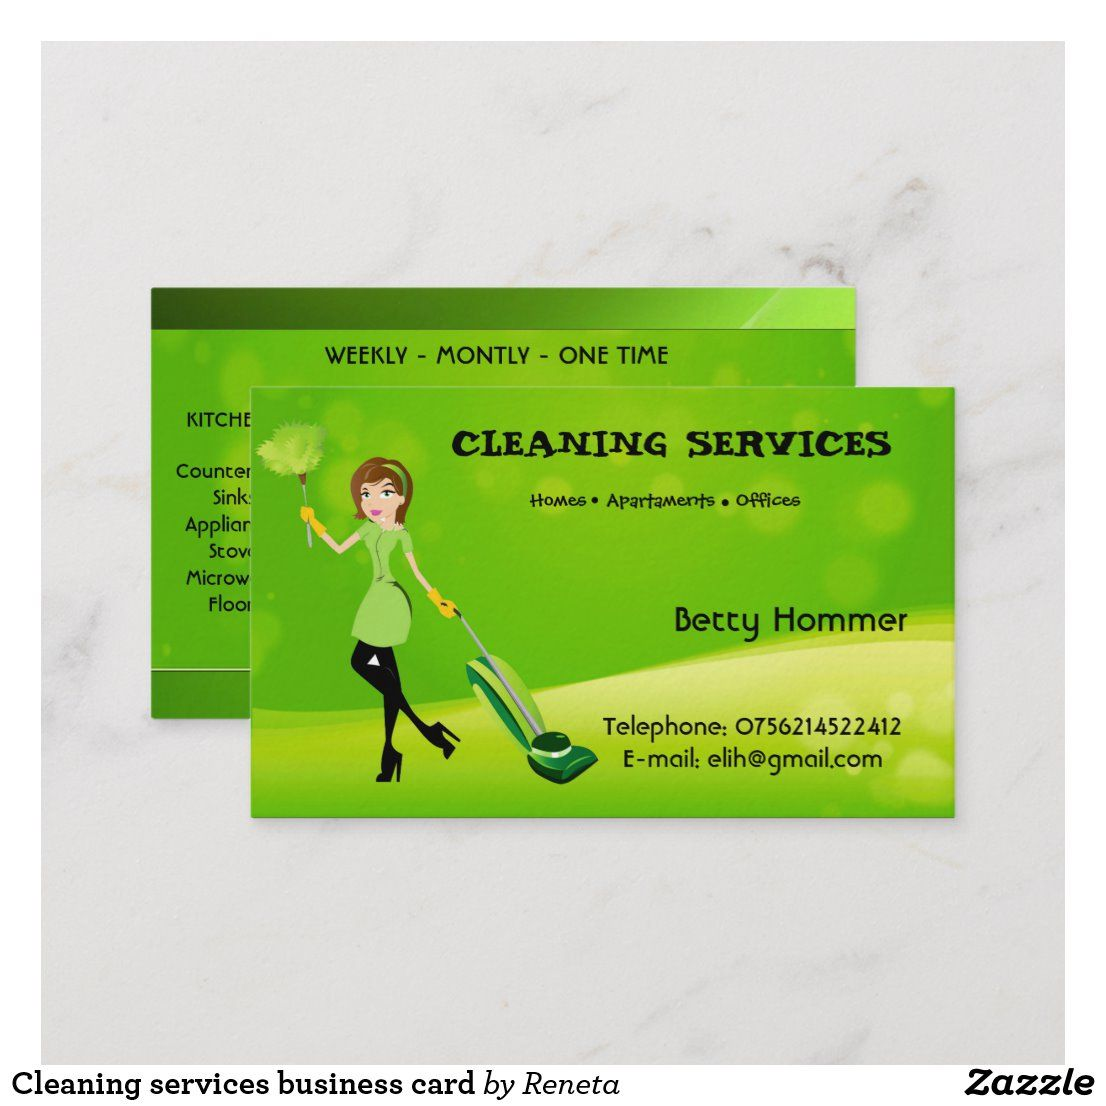 Cleaning services business card services business